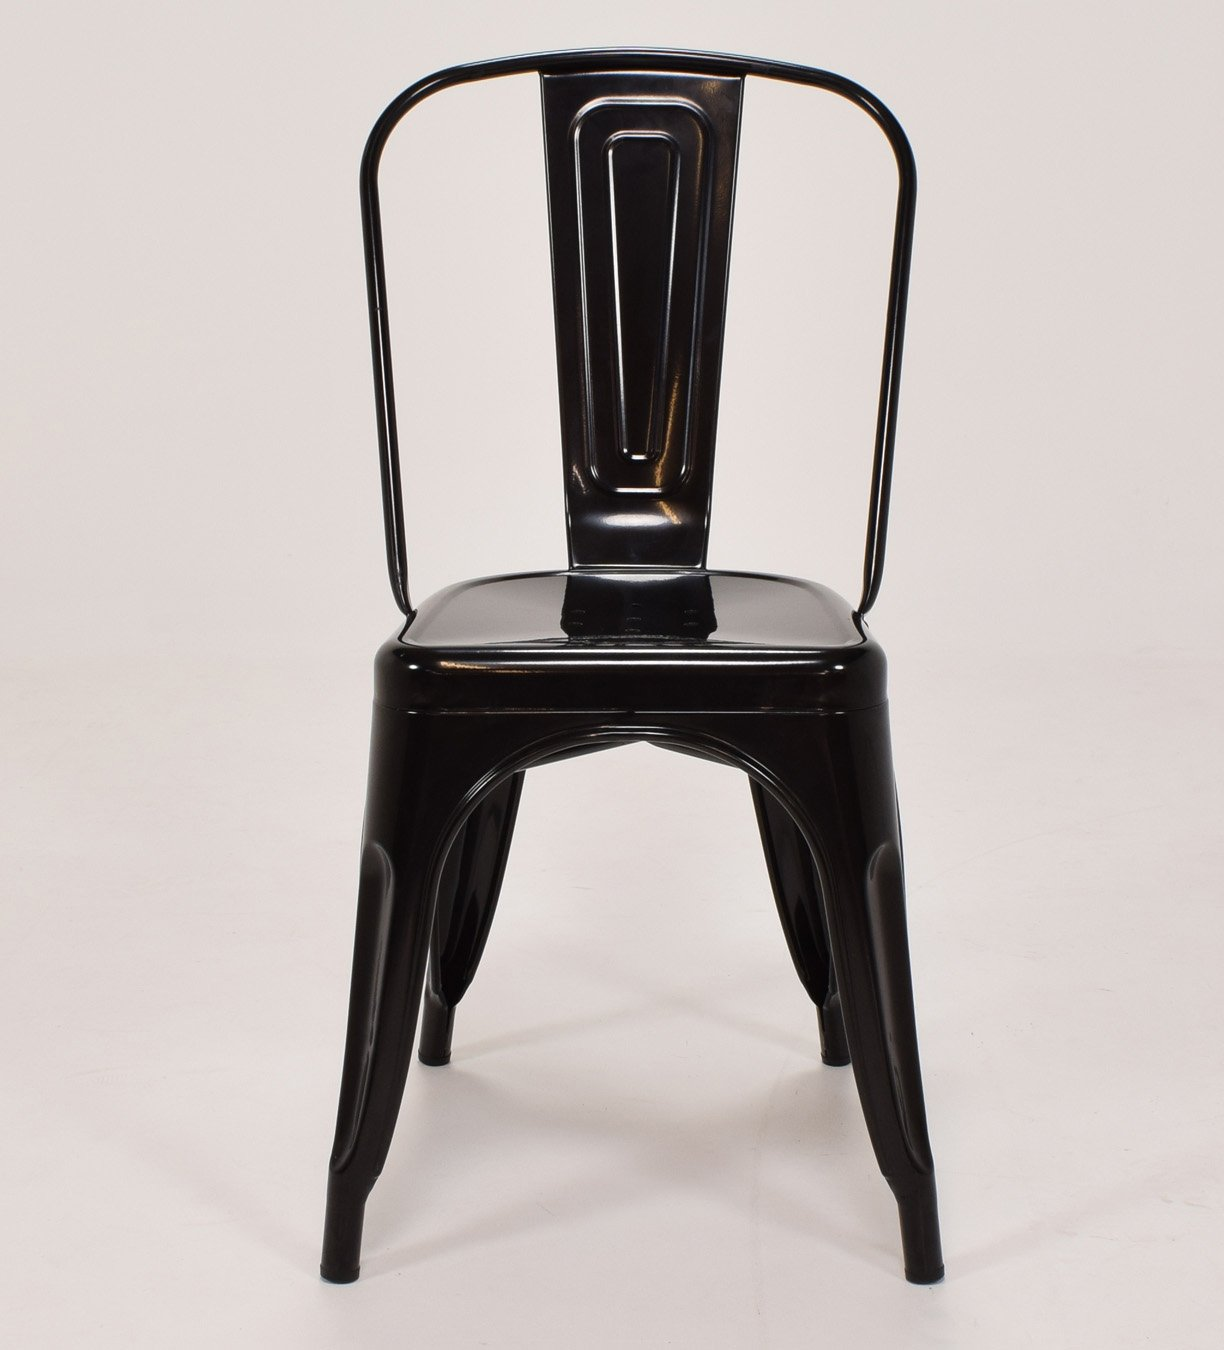 FWH-Direct Tolix Style Vintage French Cafe Chairs in Black